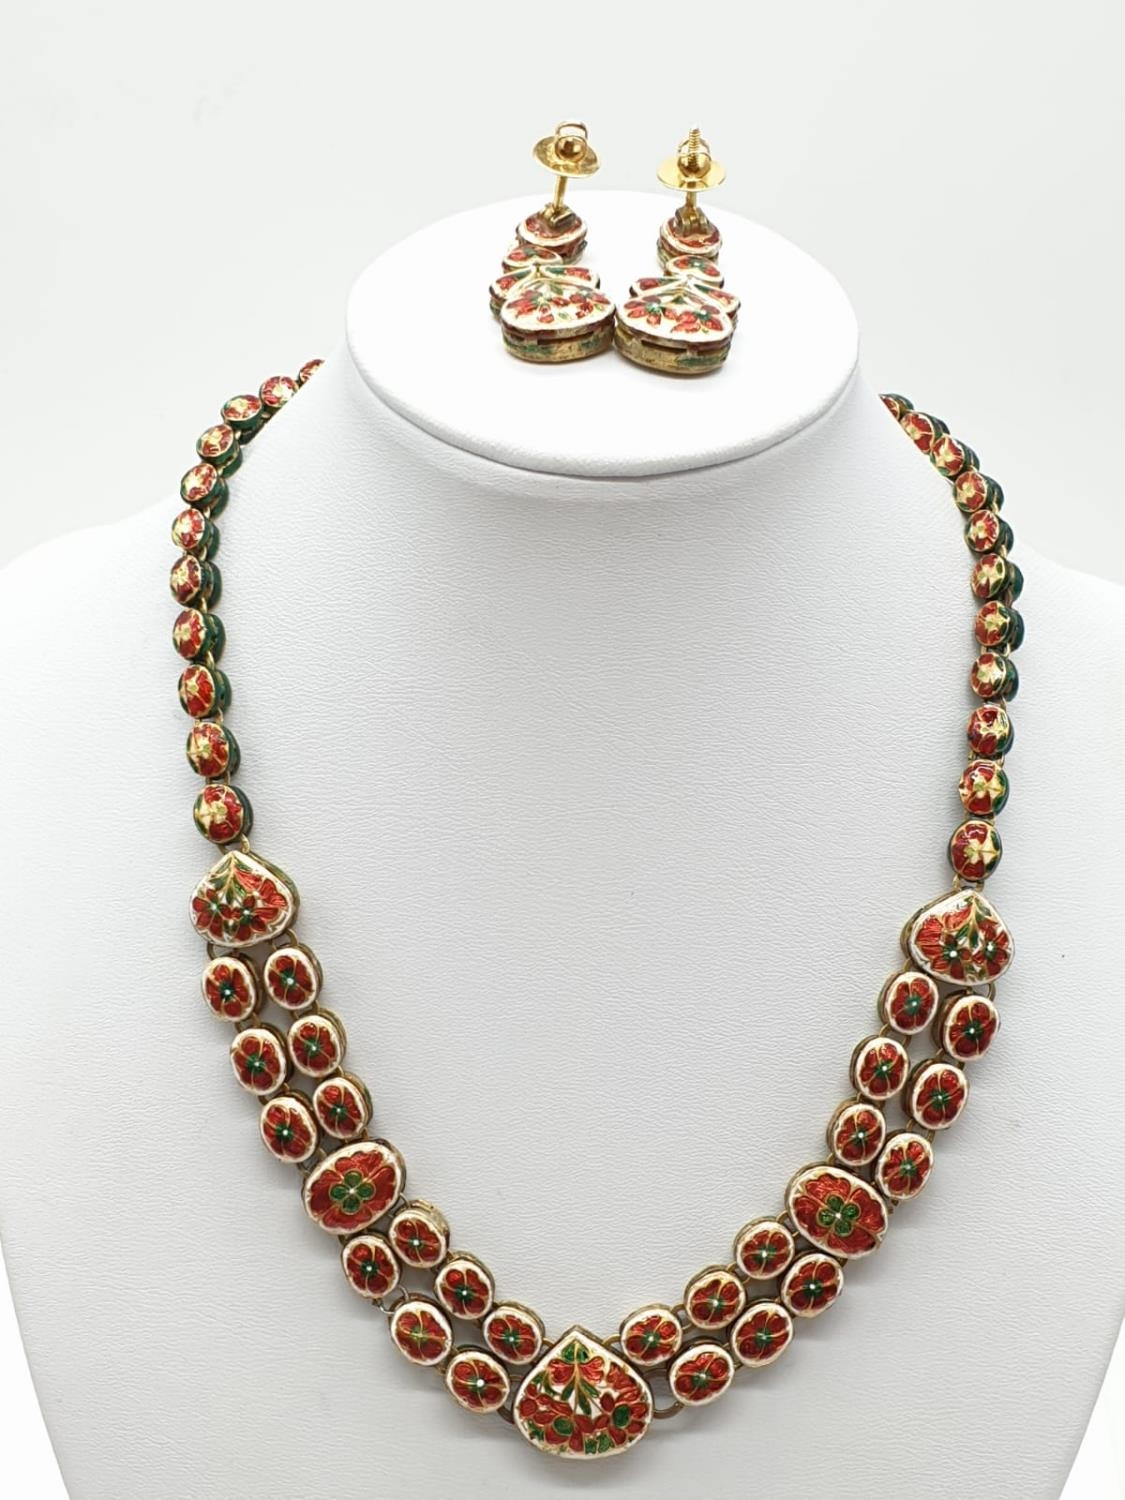 18k Indian set of Ruby and Rose Diamonds NECKLACE (40cm) and EARRINGS. 68g. - Image 2 of 9